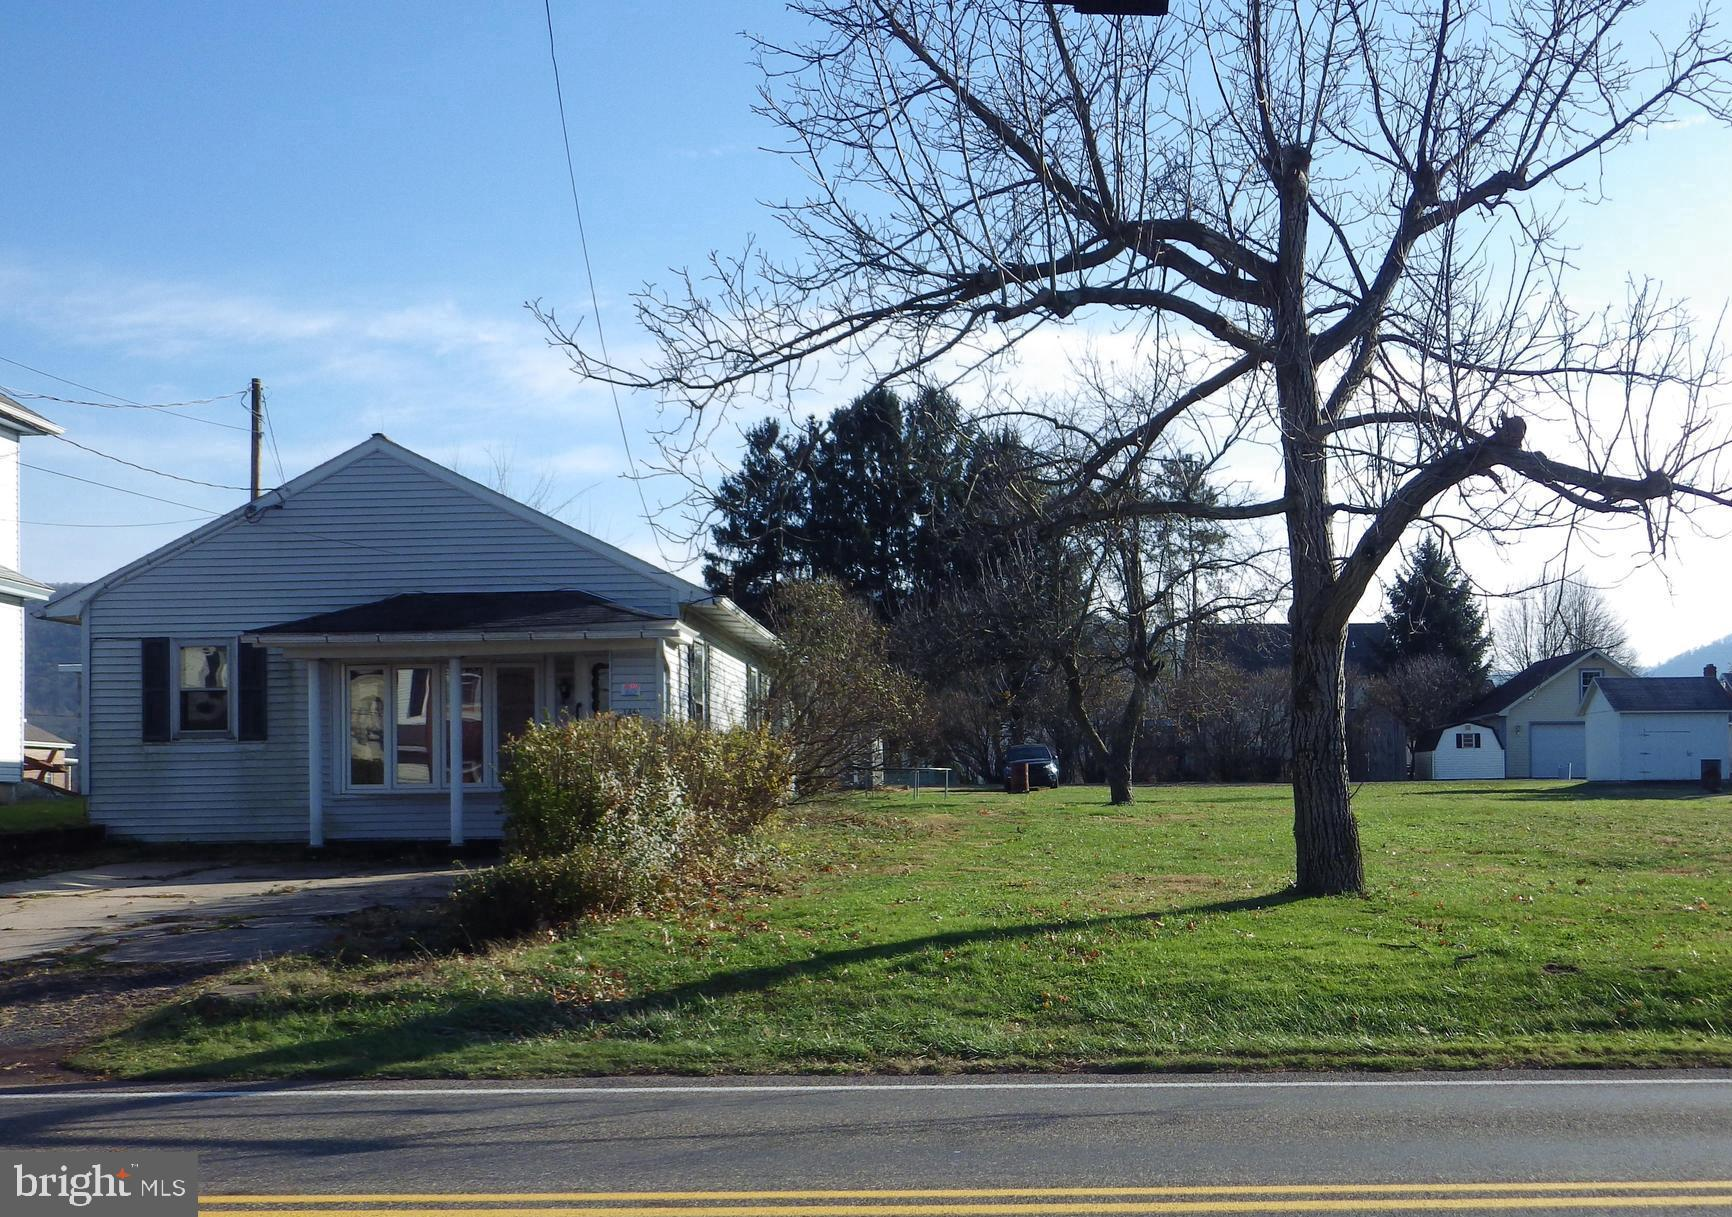 1461 W MAIN STREET, VALLEY VIEW, PA 17983